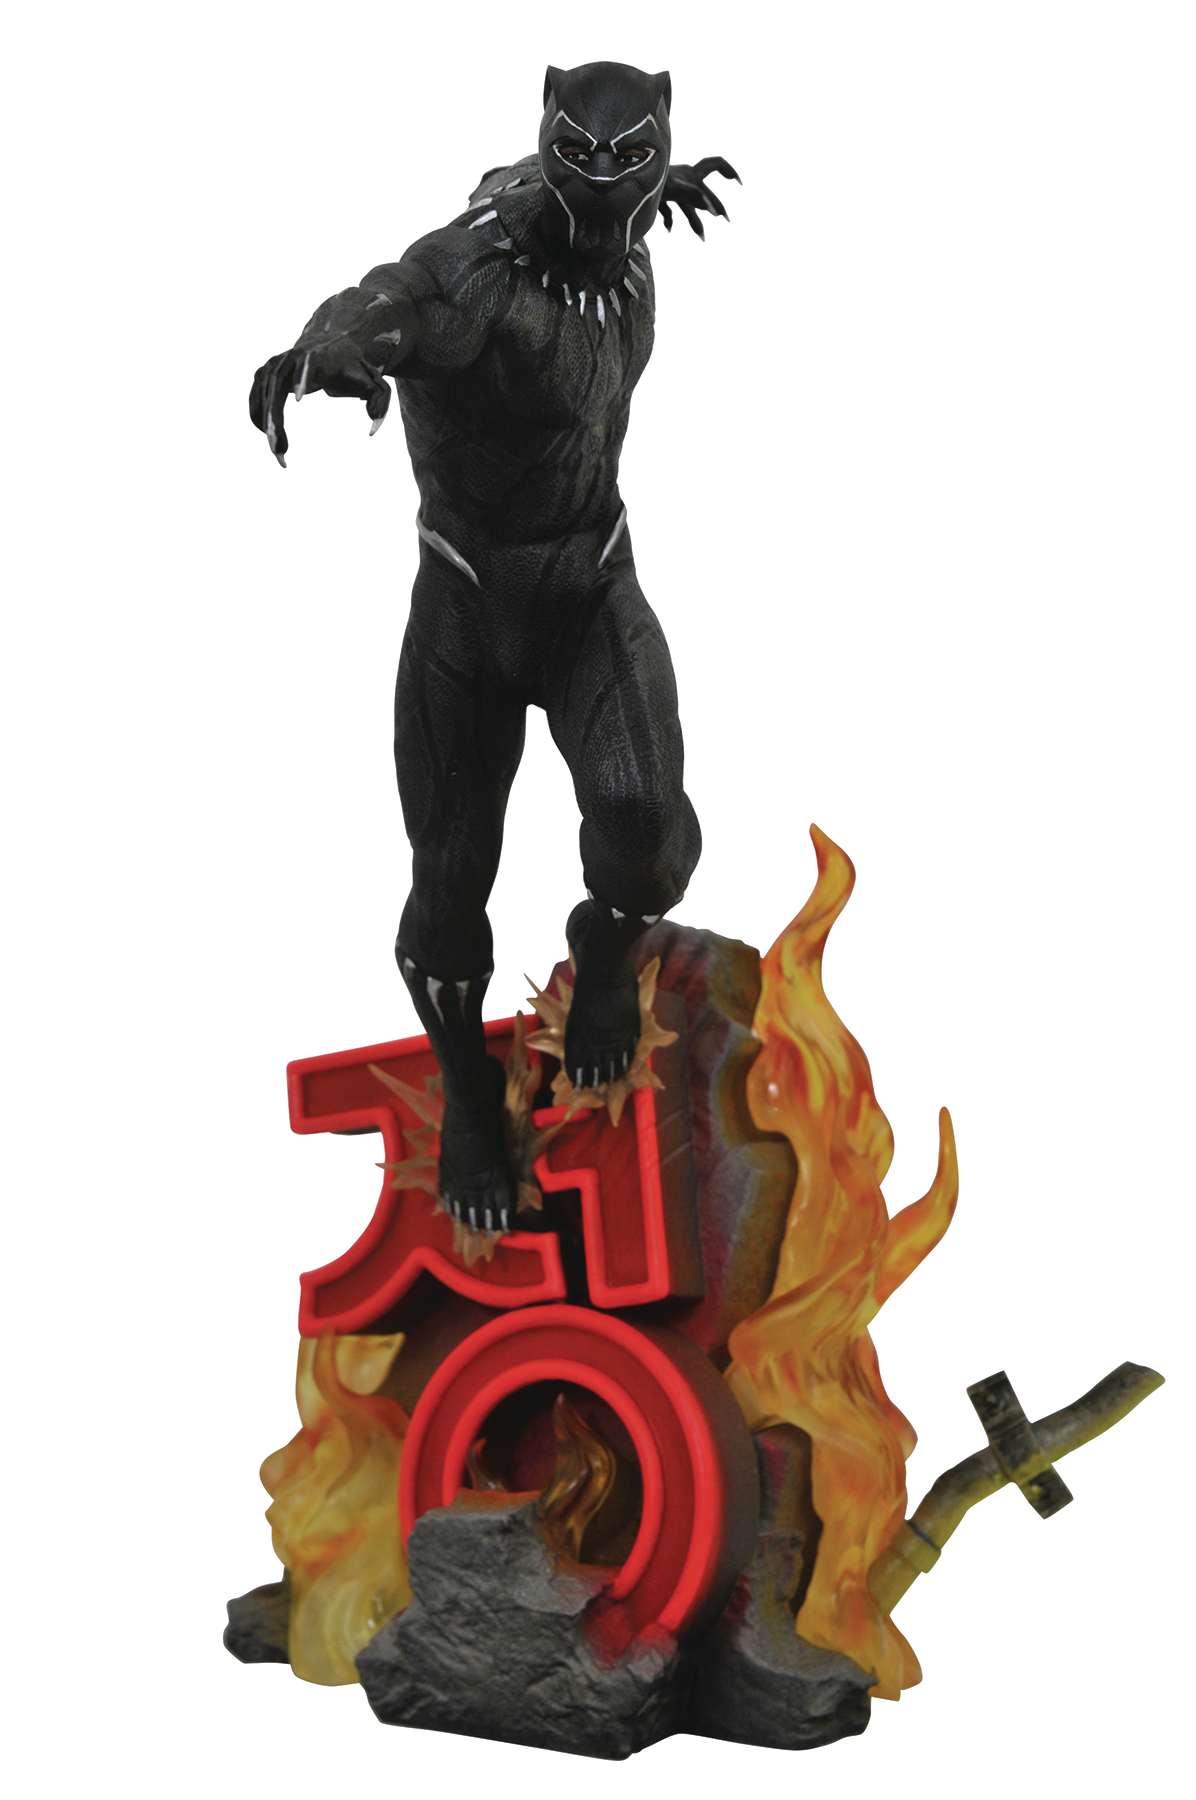 MARVEL PREMIERE BLACK PANTHER MOVIE STATUE